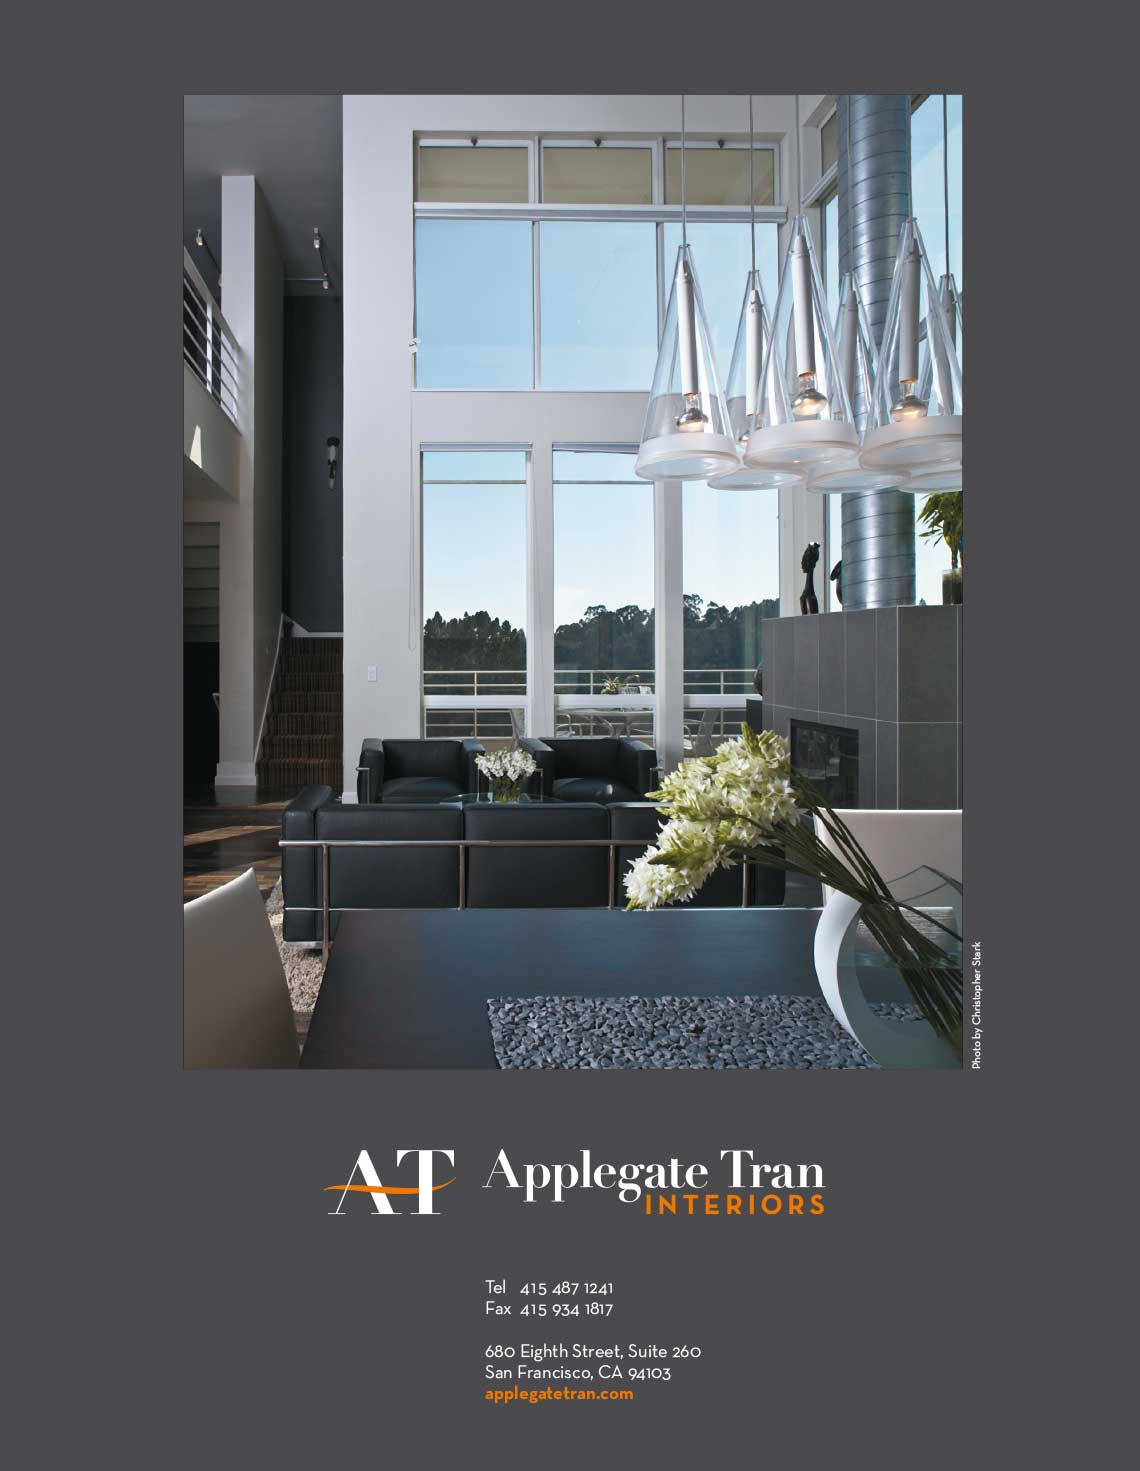 Applegate Tran Interiors Ad